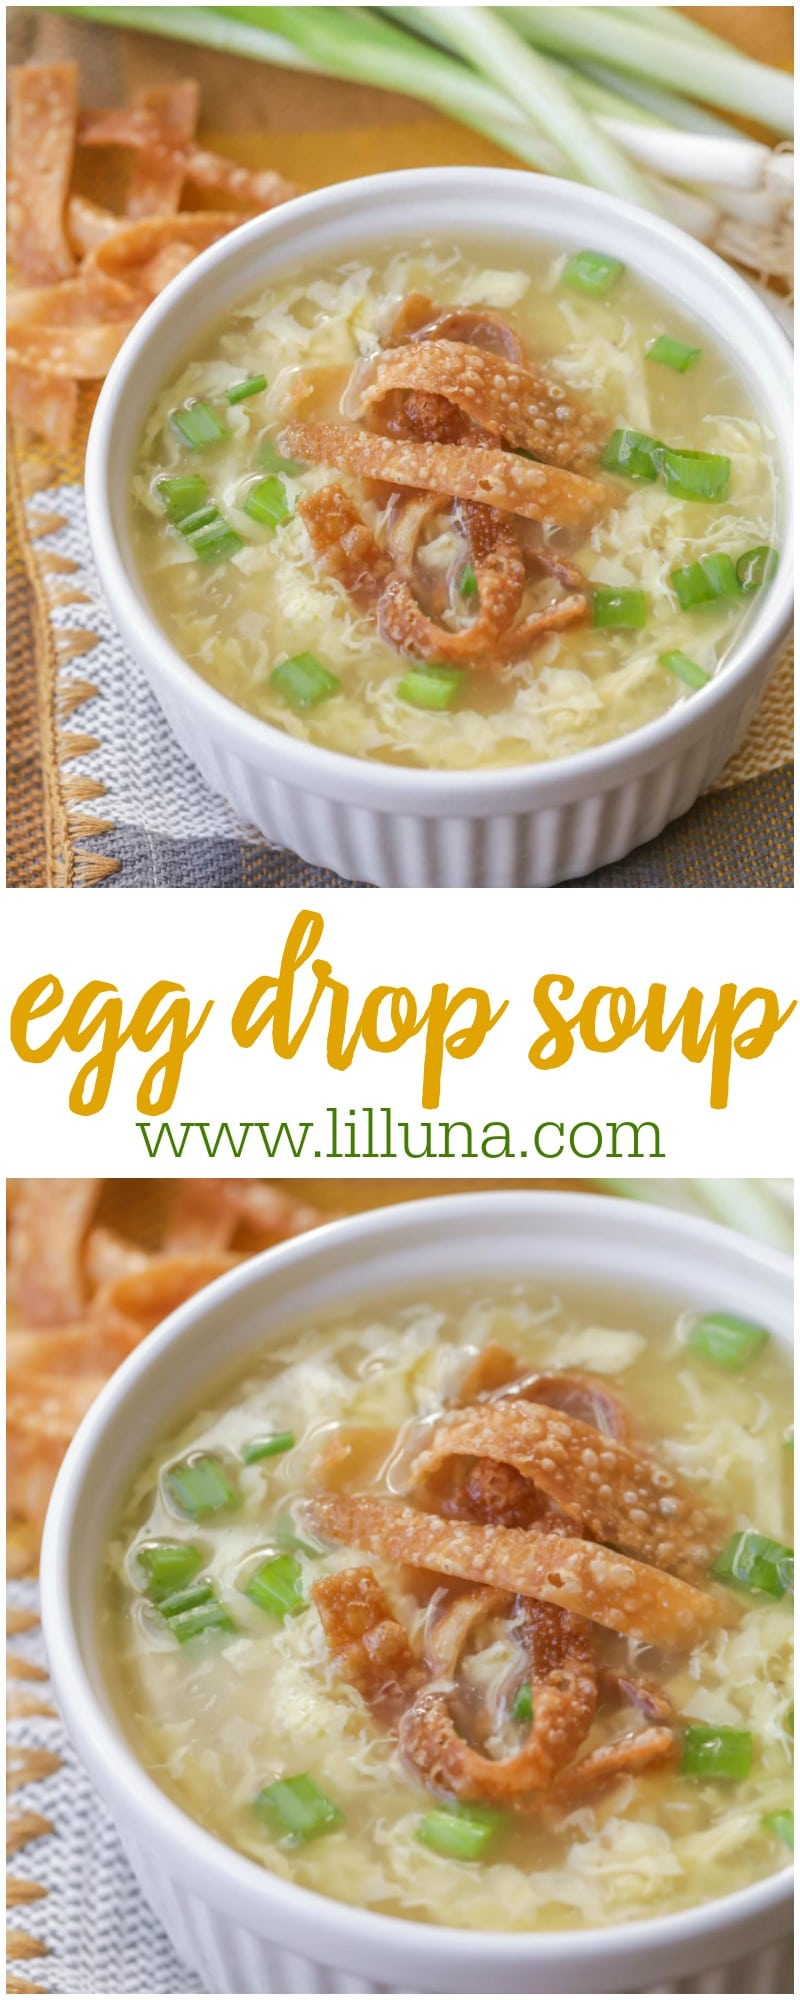 Delicious Egg Drop Soup - now you can make and enjoy one of your favorite restaurant recipes at home. It's so easy and tasty!